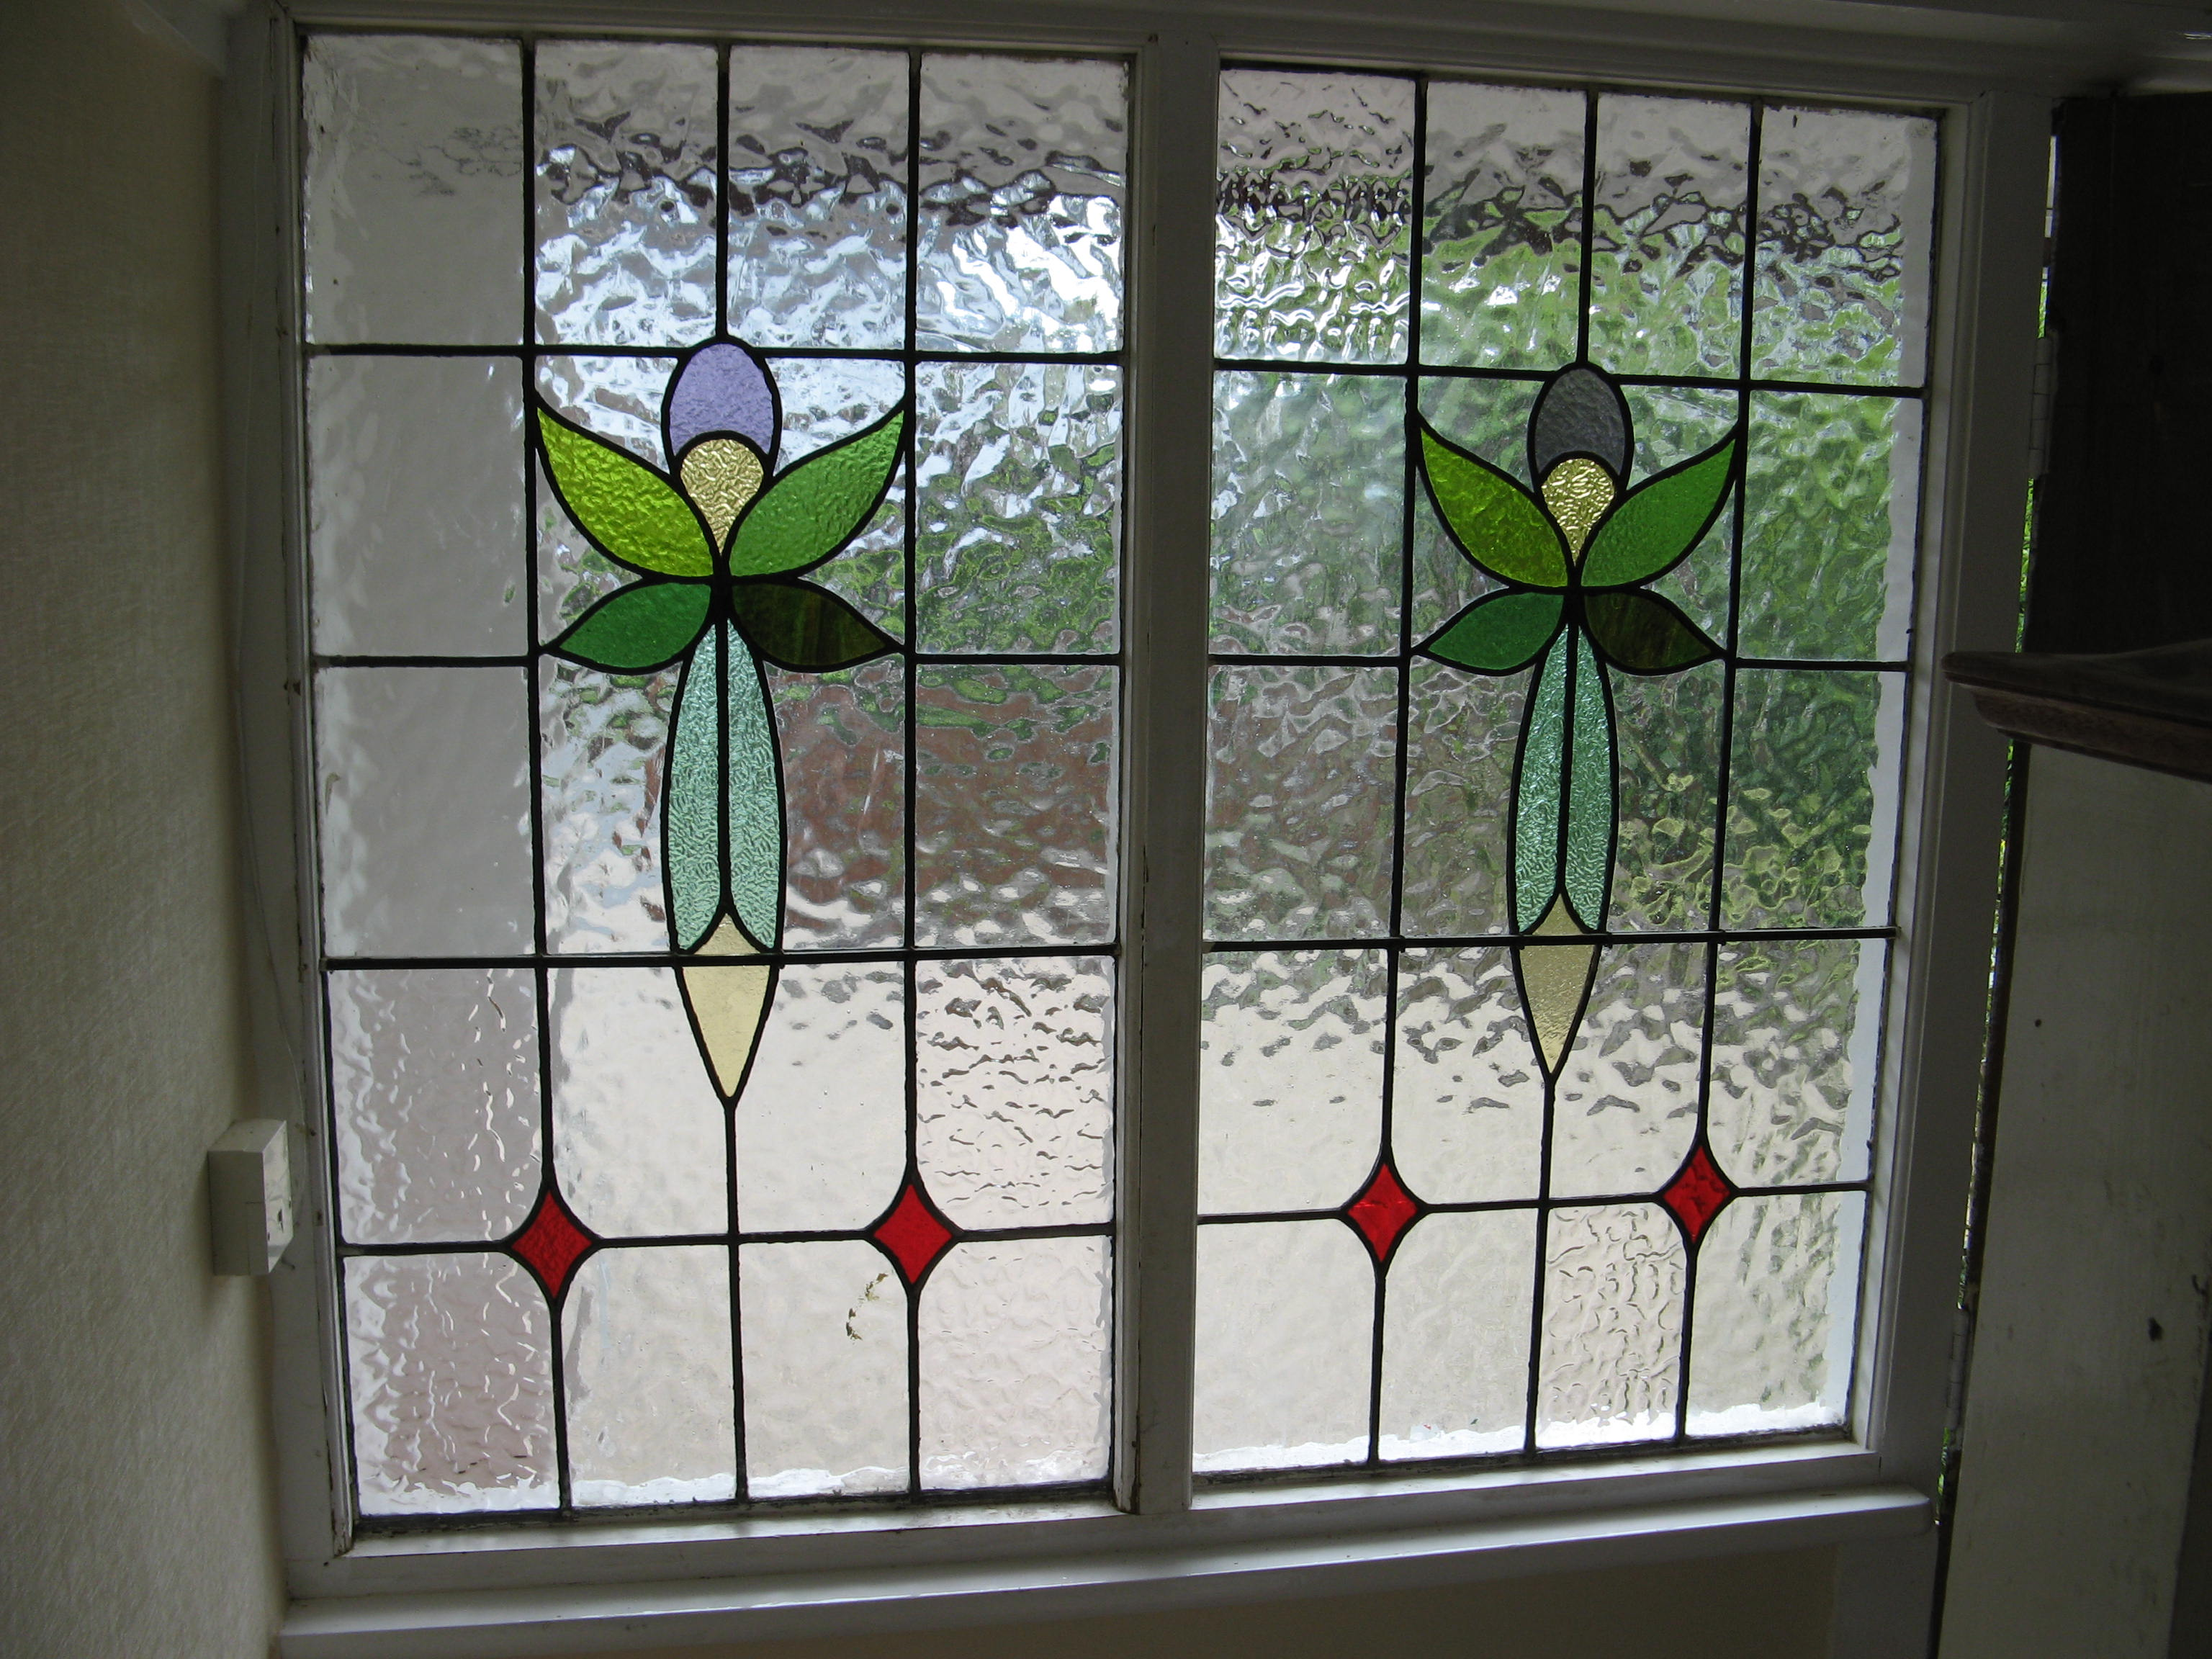 Stained glass windows repair installation and for Window glass design images